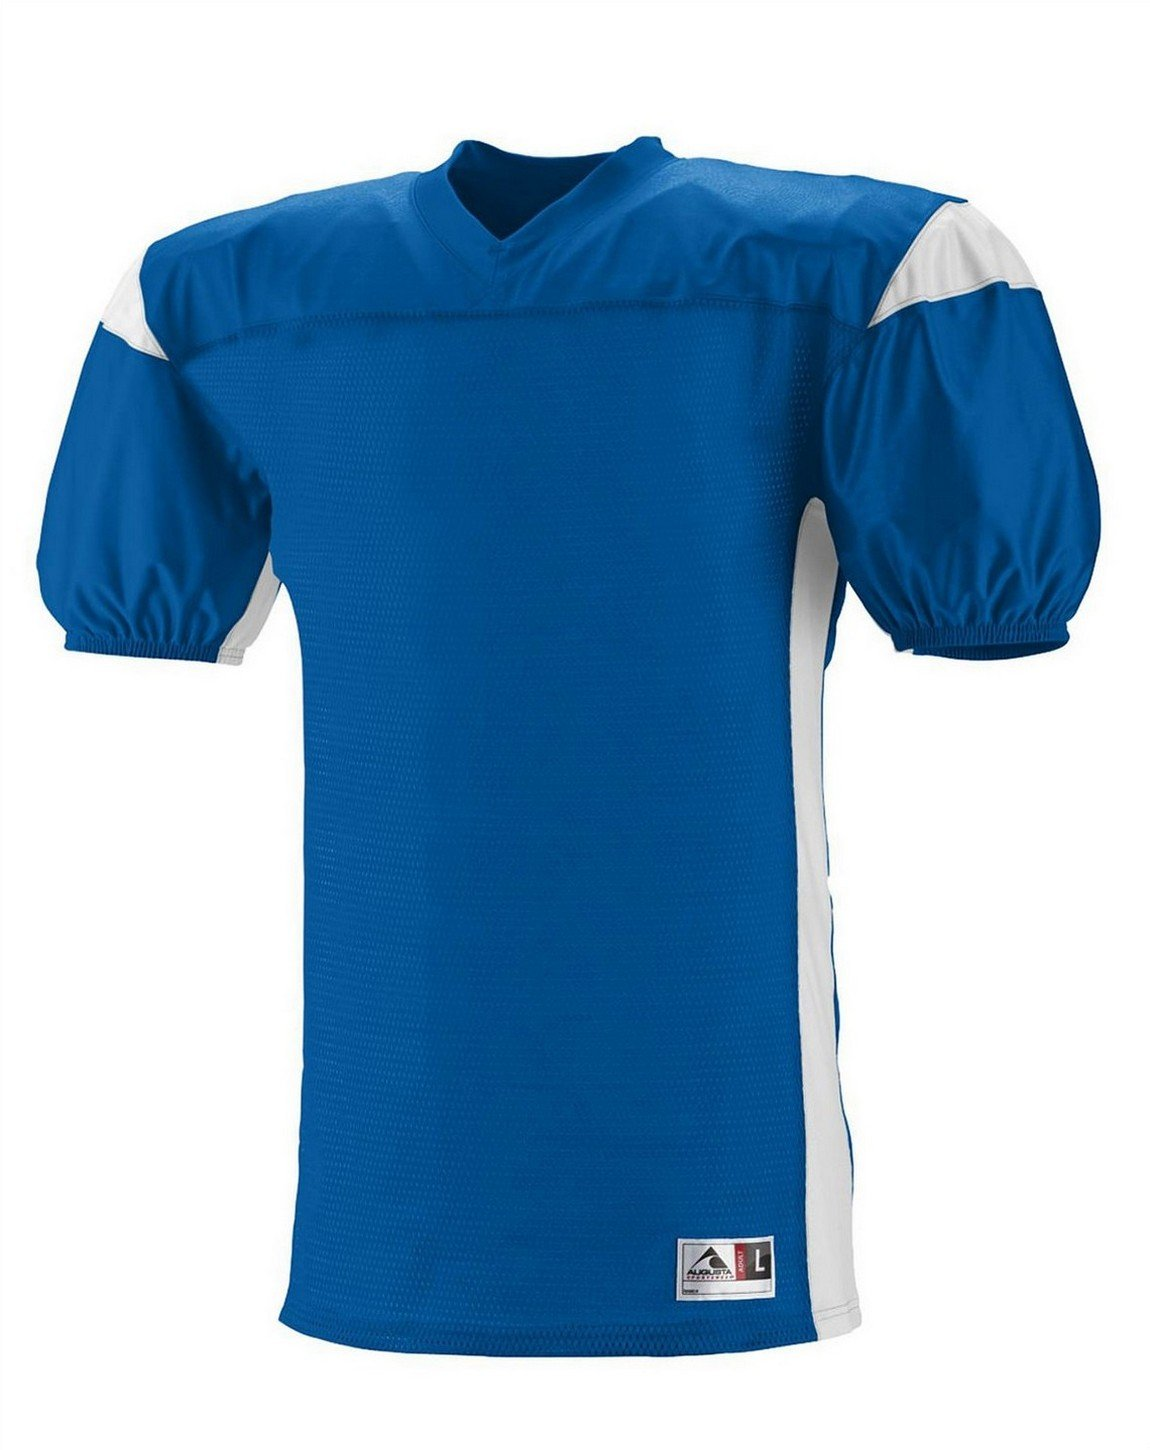 9521 AG YTH DOMINATOR MESH JERSEY ROYAL/ WHITE M